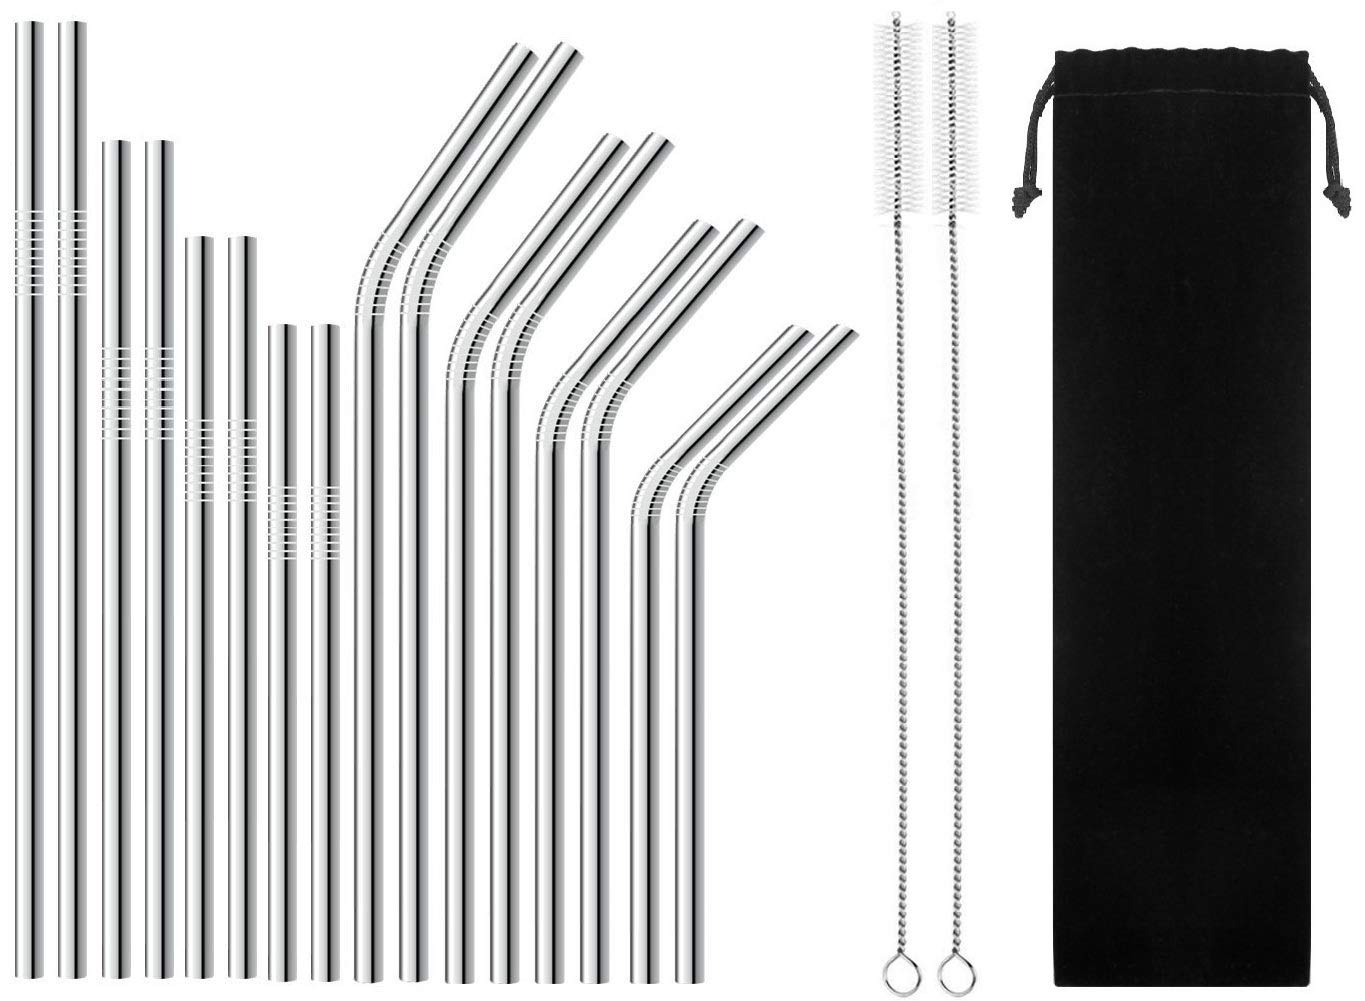 OctTN Stainless Steel Metal Straws Set of 16 for 20oz 30oz Tumbler, 6.3'' 7.1'' 8.5'' 10.5'' Reusable Drinking Straws, Long Short Straight Bent Compatible with 10 20 30 Ounce Yeti Ozark Trail Rtic